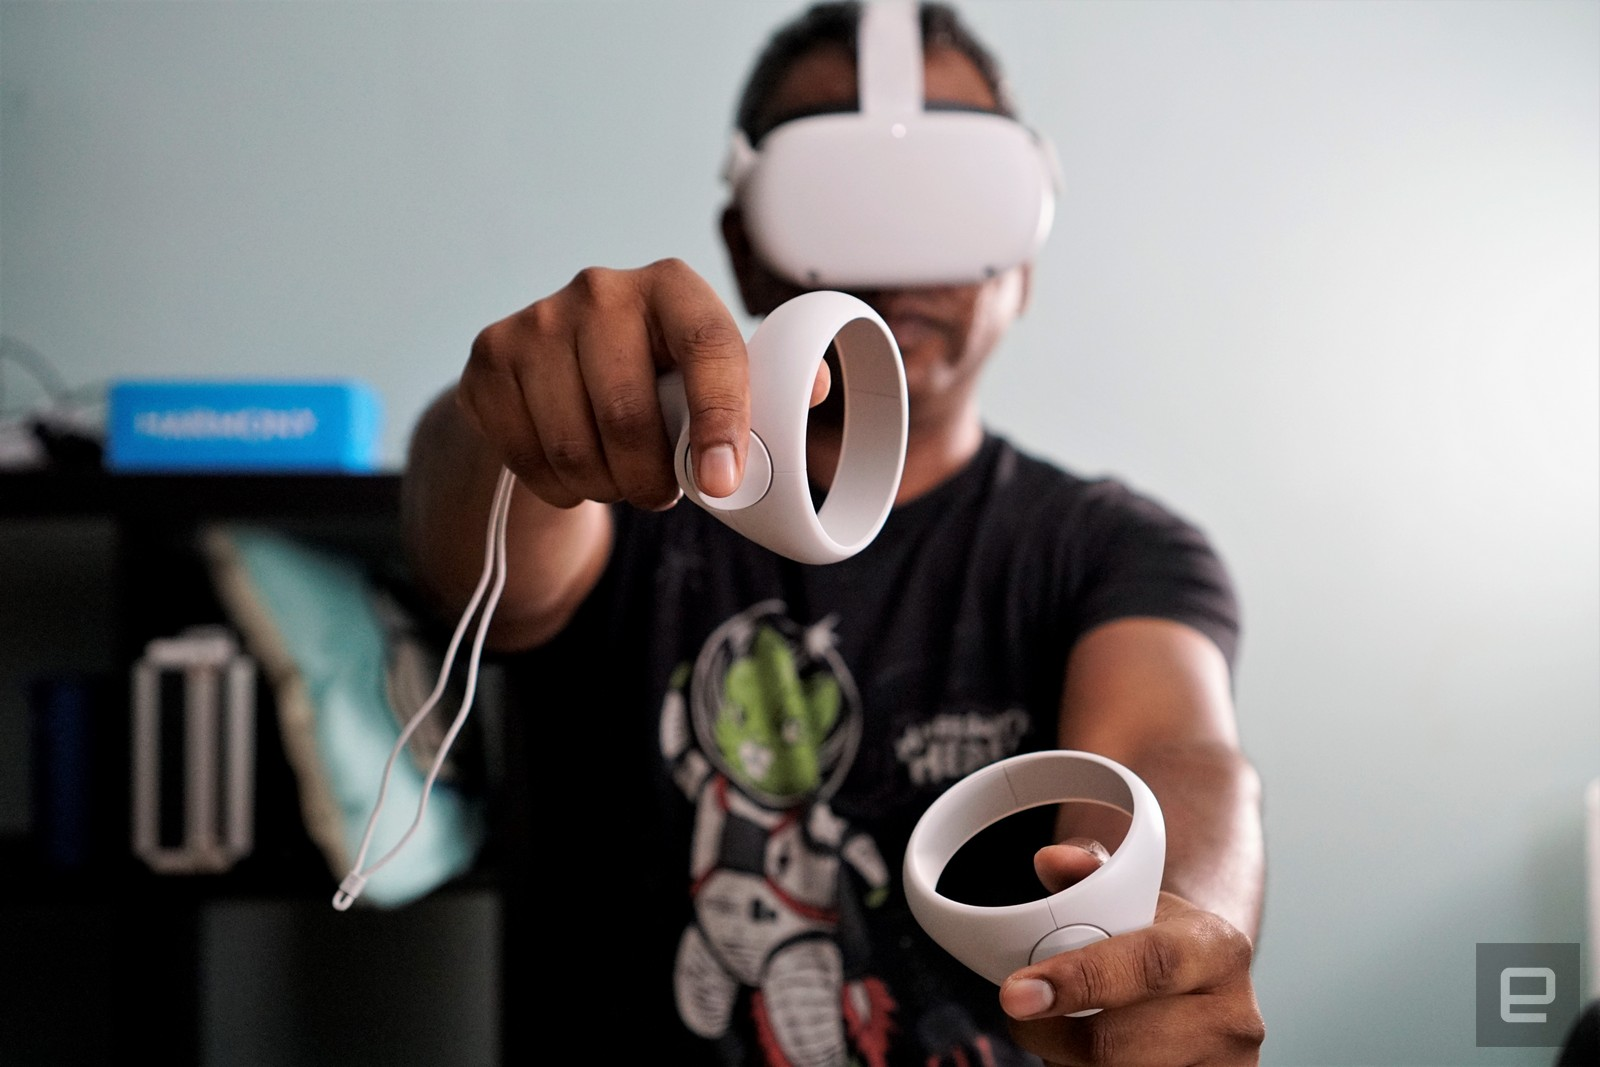 Oculus Quest 2 and Portal devices now respond to 'Hey Facebook'